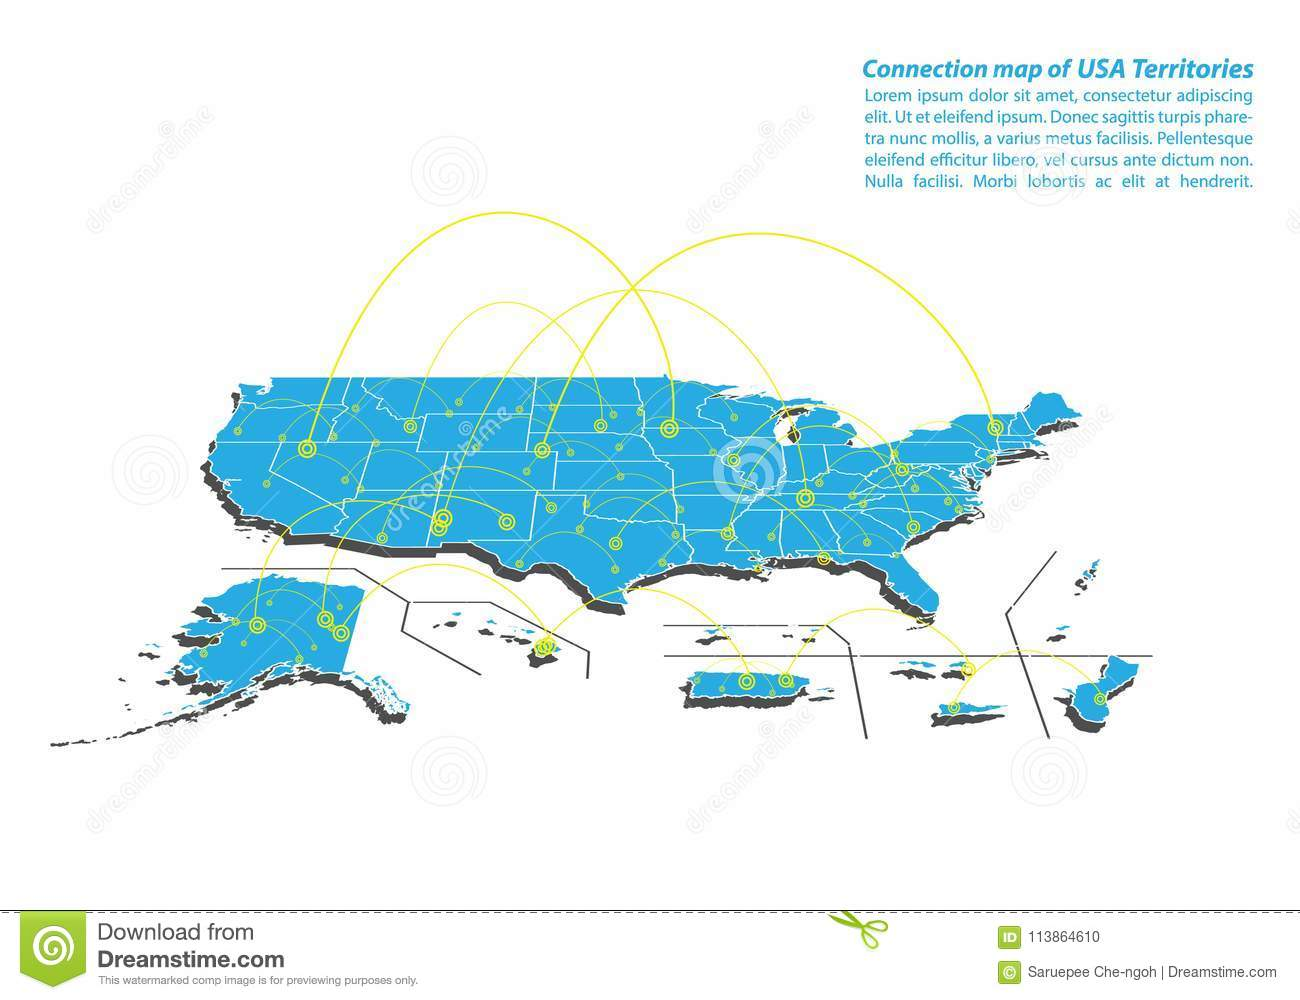 Modern Of USA Territories Map Connections Network Design, Best ...